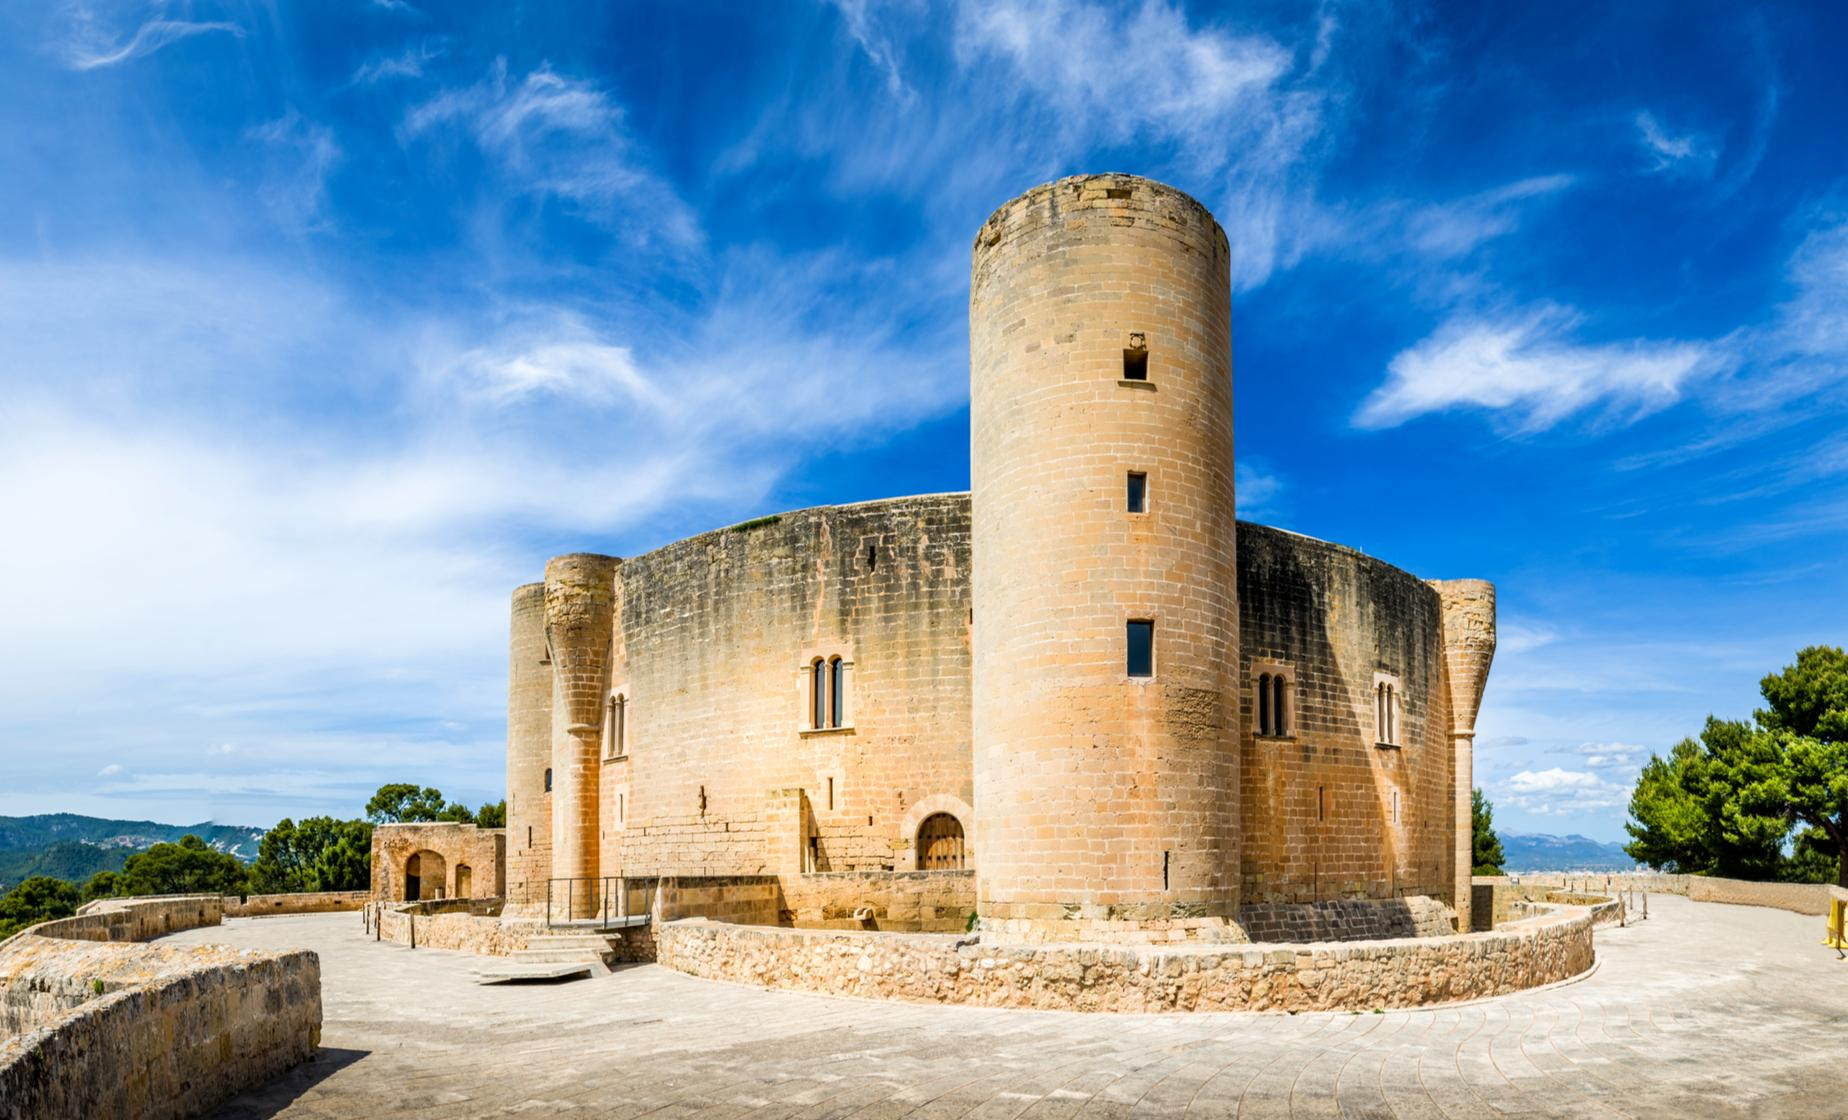 Palma City Sightseeing Hop On Hop Off Bus and Bellver Castle